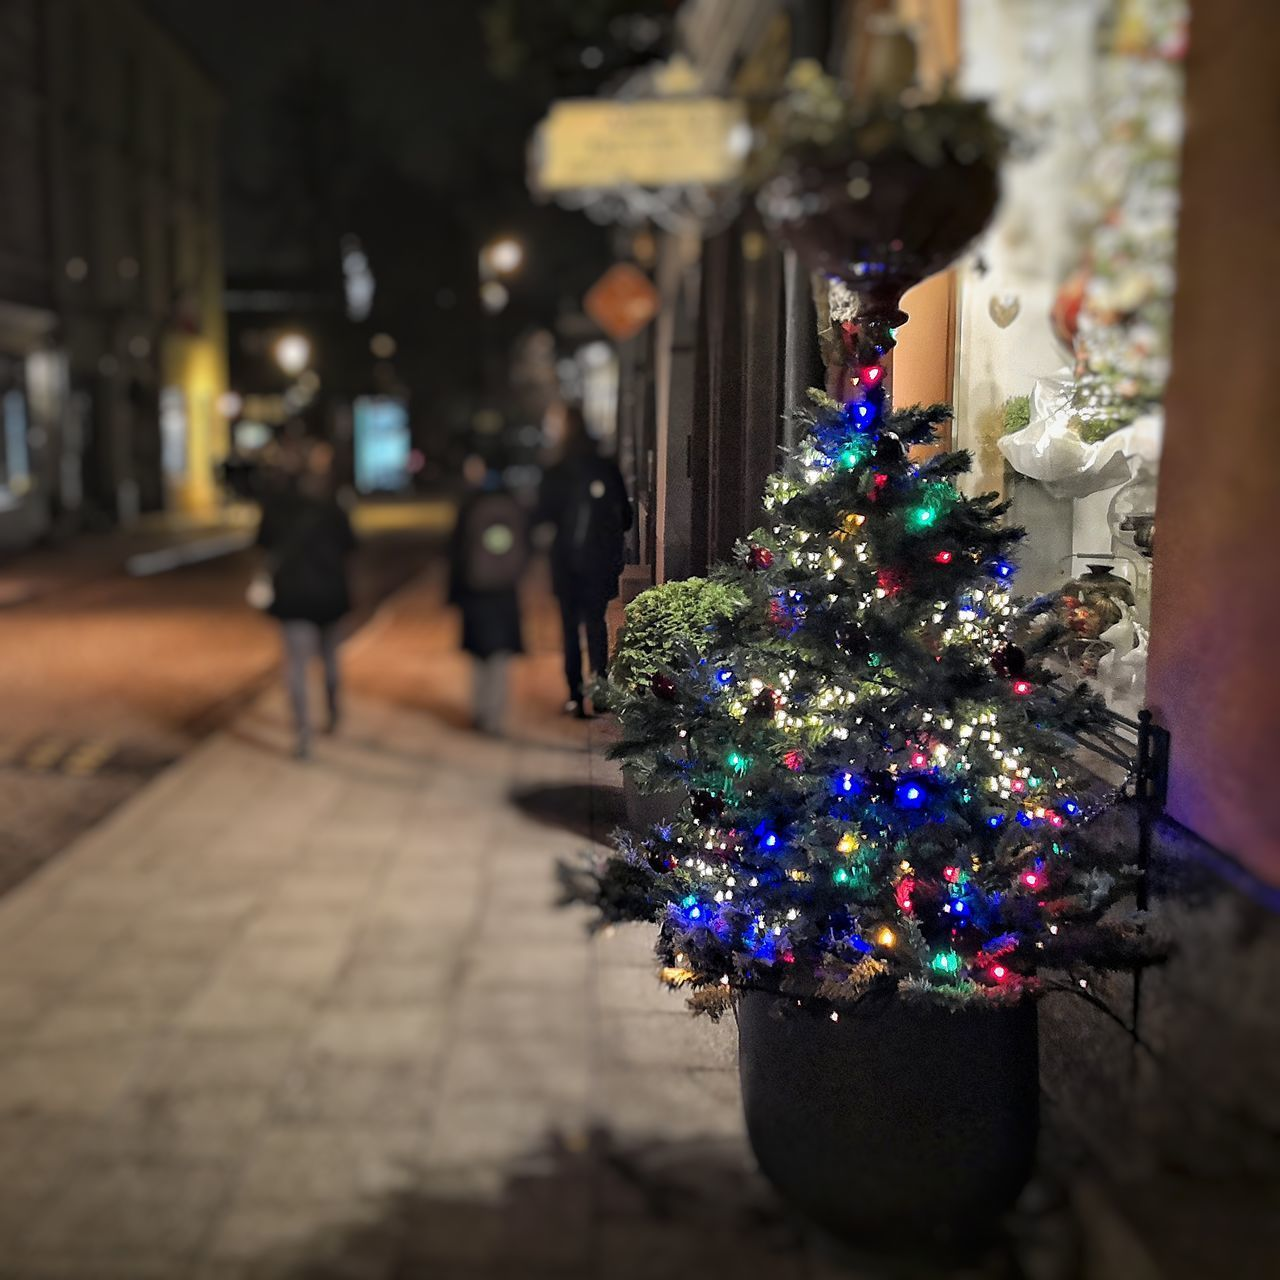 Are you ready? Christmas Christmas Decoration Christmas Tree Celebration Night Christmas Lights Illuminated Christmas Ornament Holiday - Event Outdoors City Vilnius Lithuania Vilnius Old Town Pilies Gatvė Kaledos Night City Lights